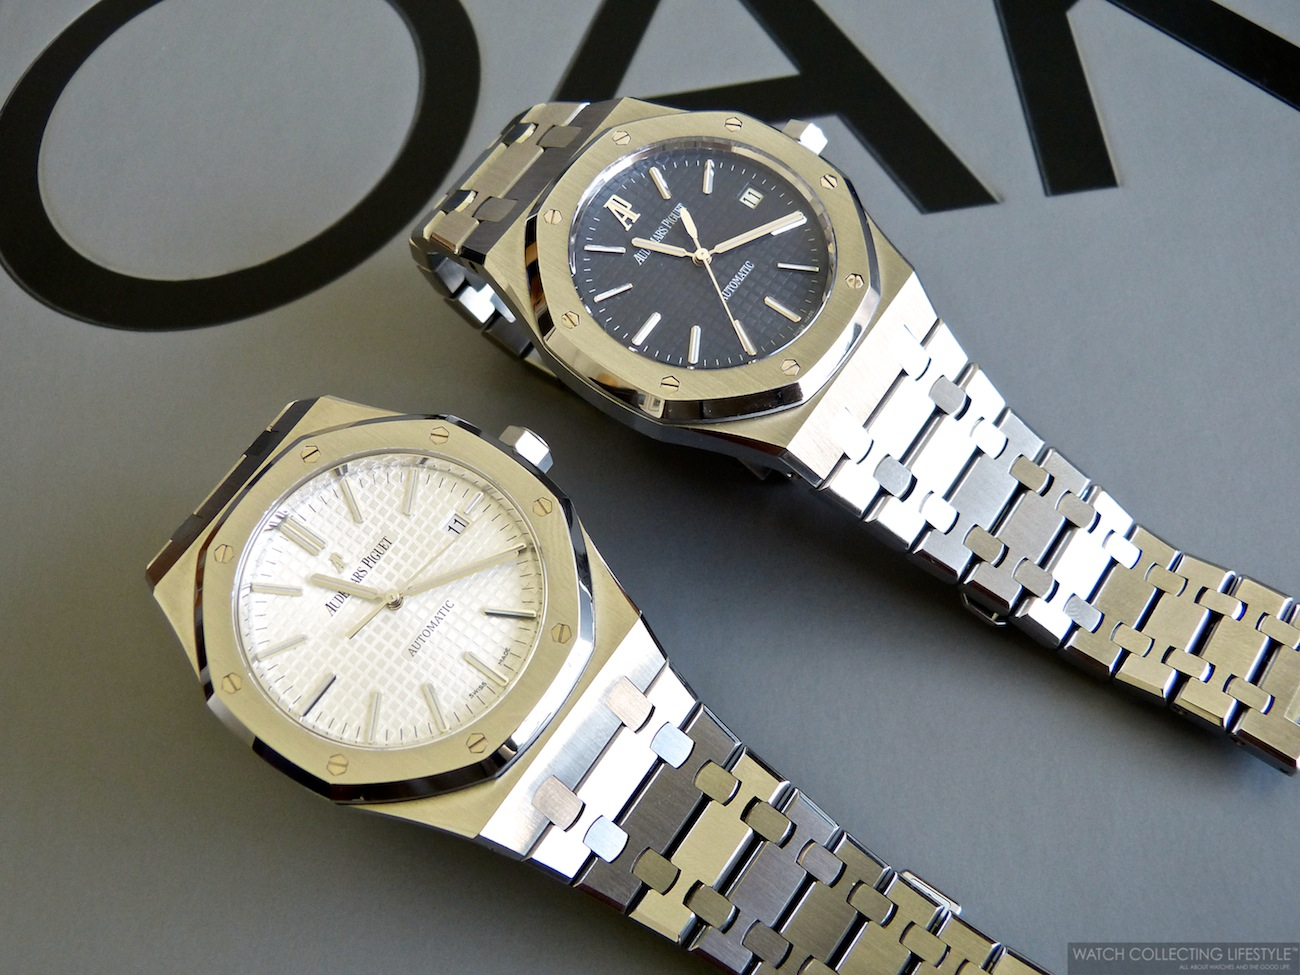 Audemars Piguet Royal Oak ref. 15400ST (left) and Audemars Piguet Royal Oak ref. 15300ST (right).